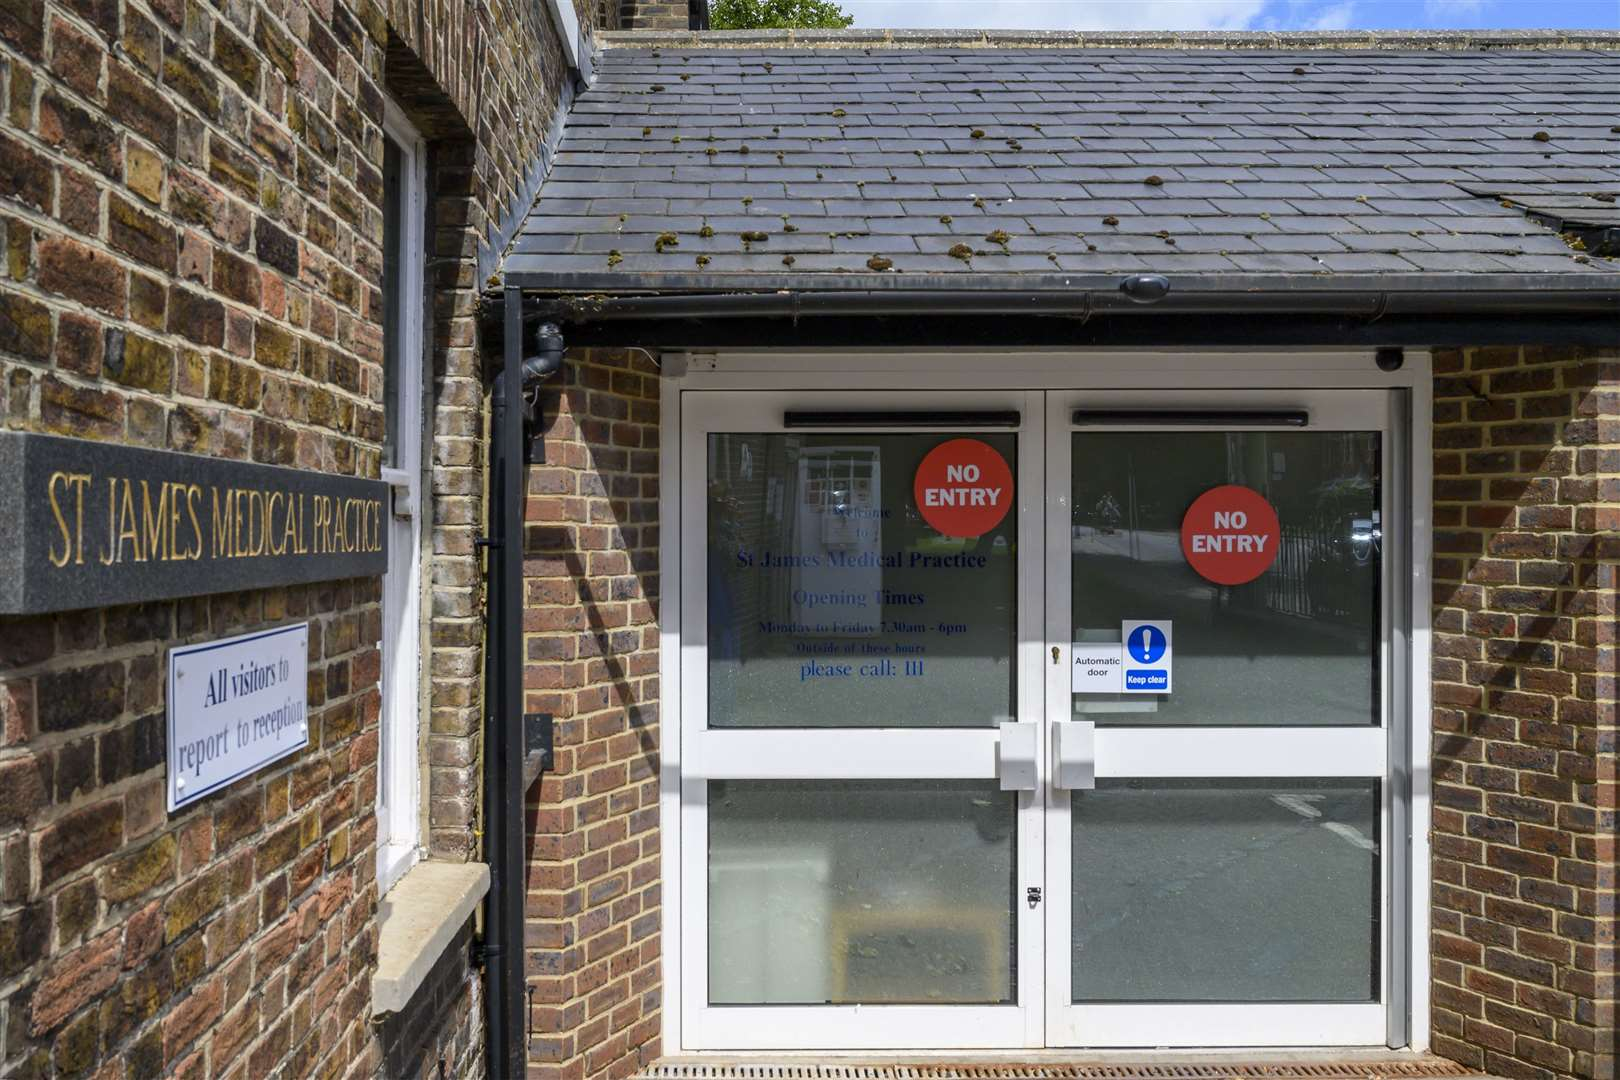 St James Surgery in King's Lynn. Picture: Prabir Mitra